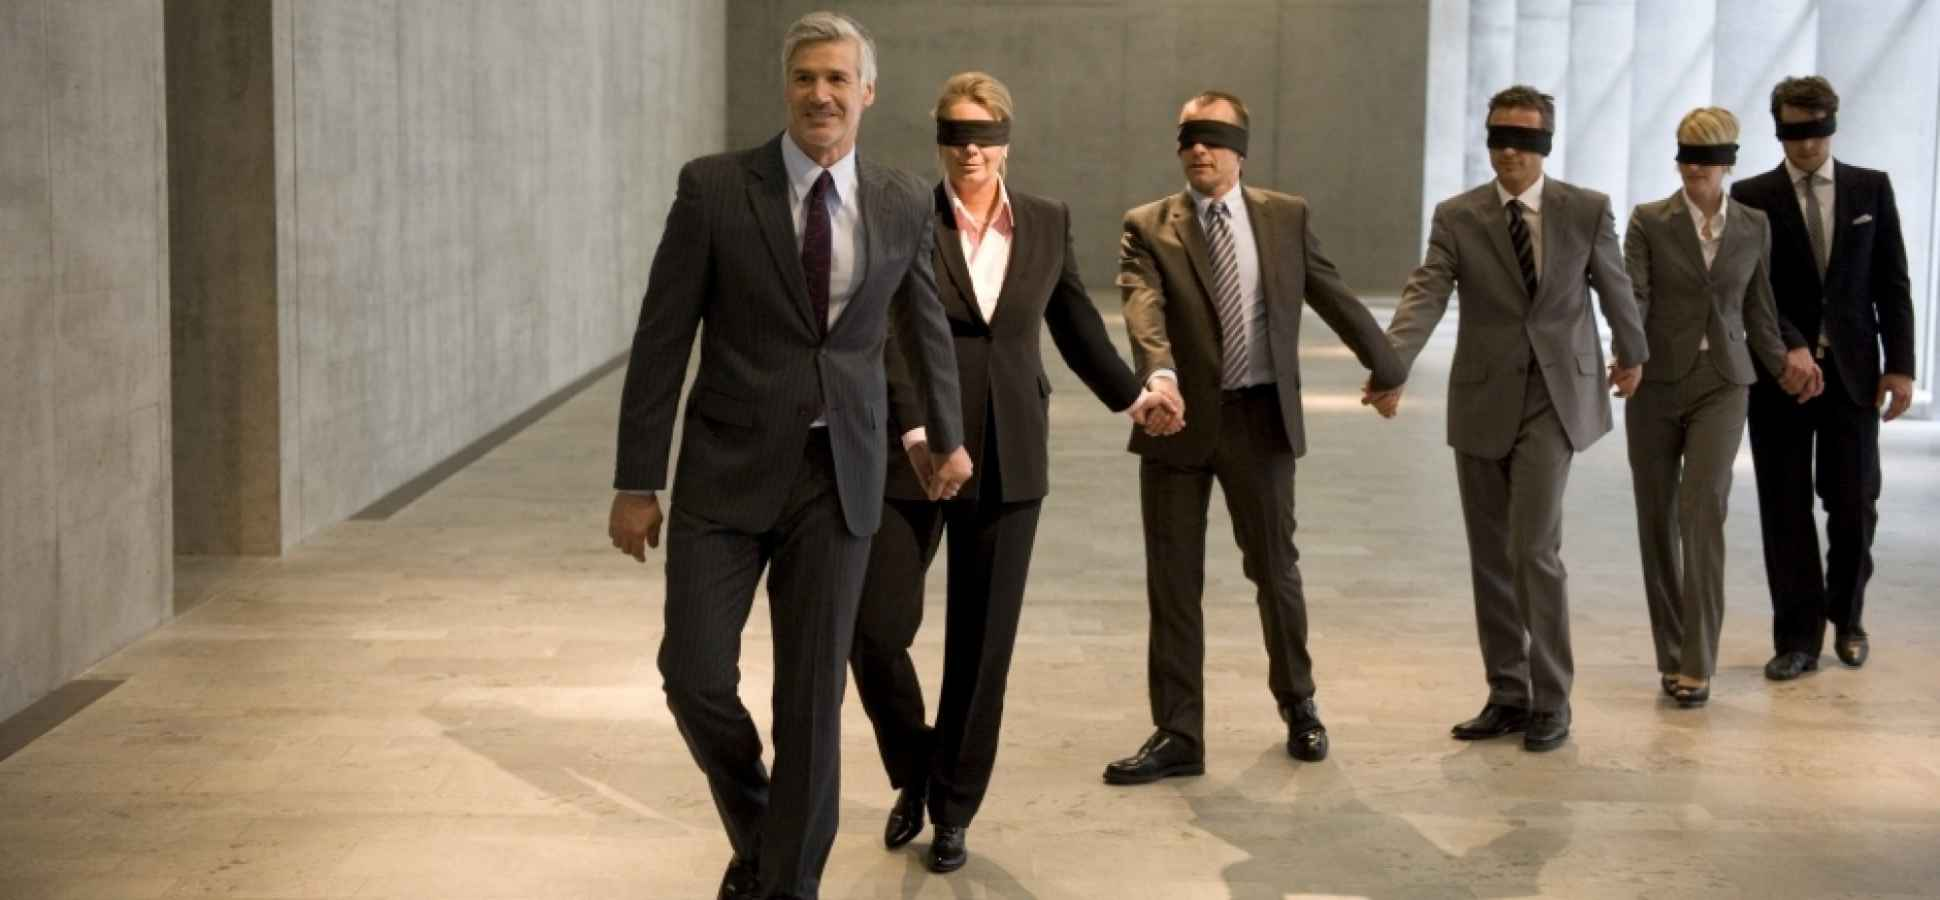 10 Benefits of Being a Trustworthy Leader